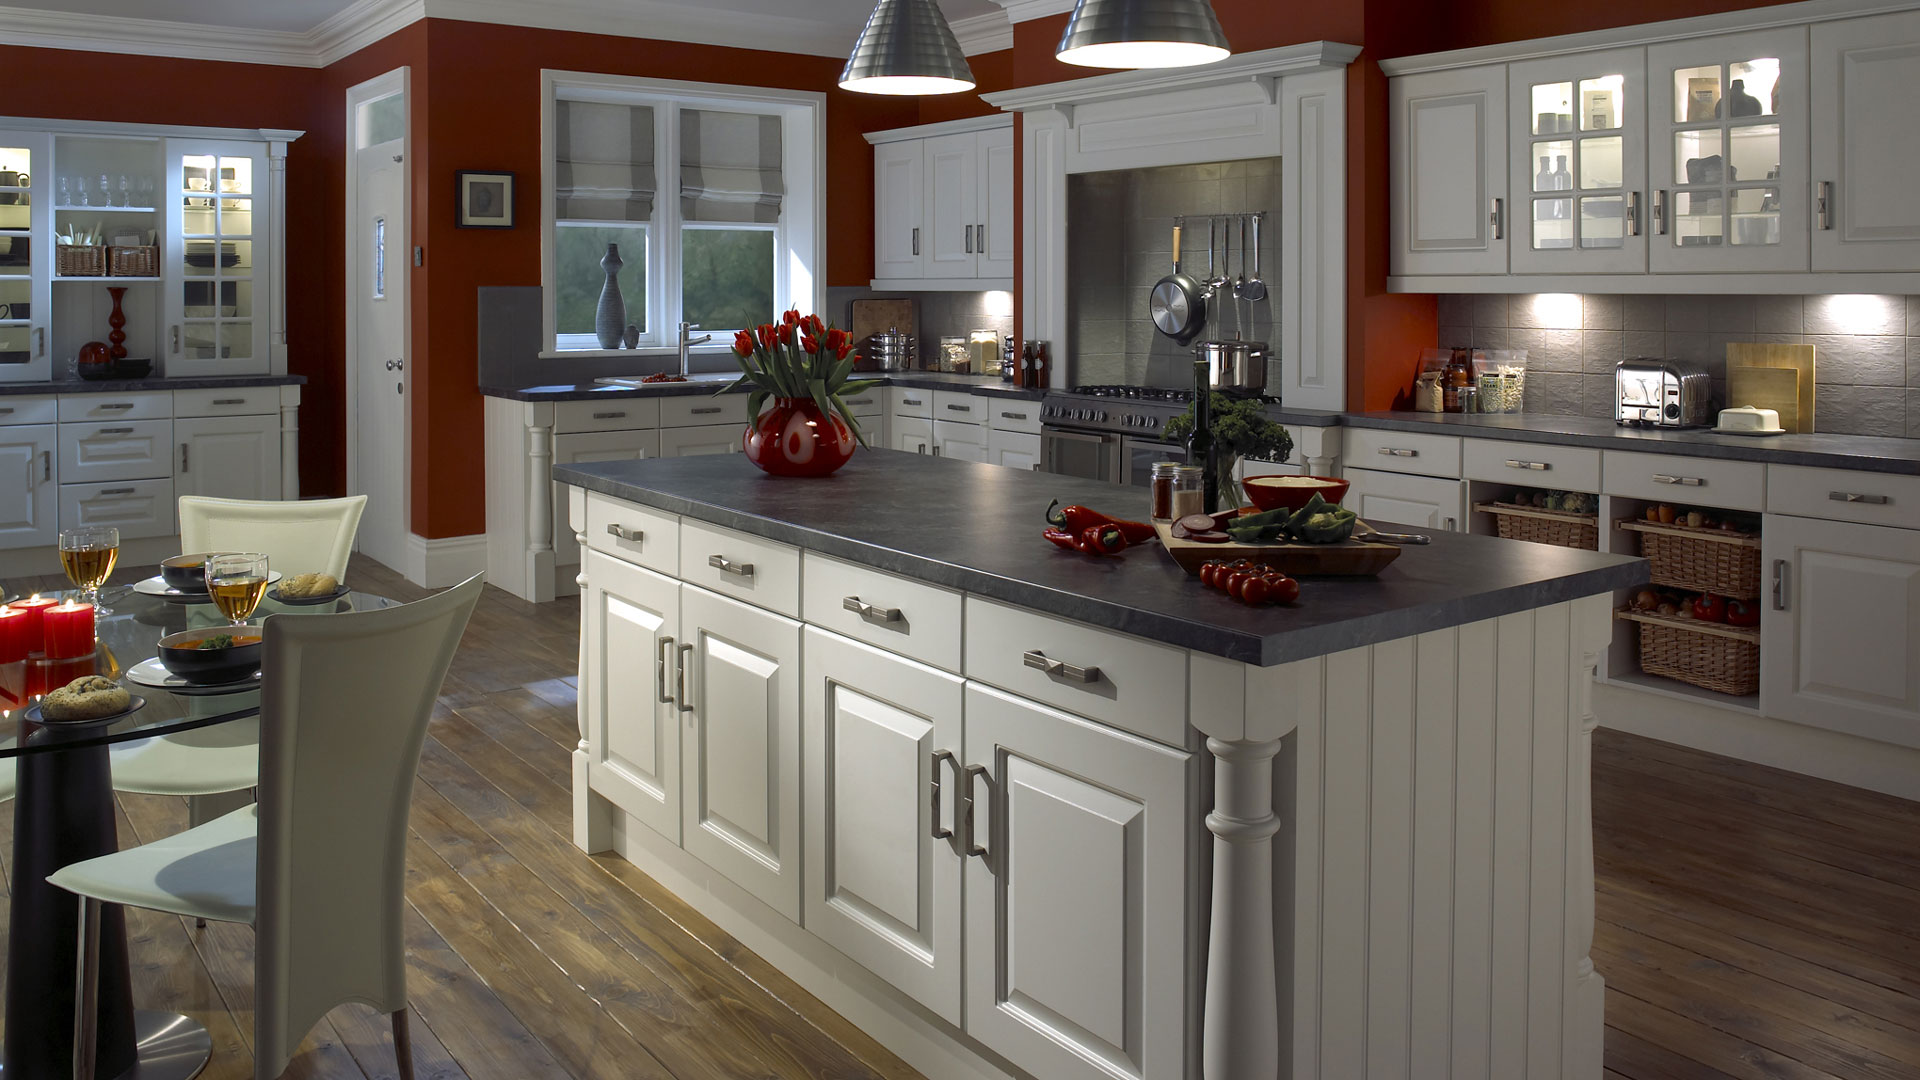 Kitchen Island - Will it work in your space? - New Design ...